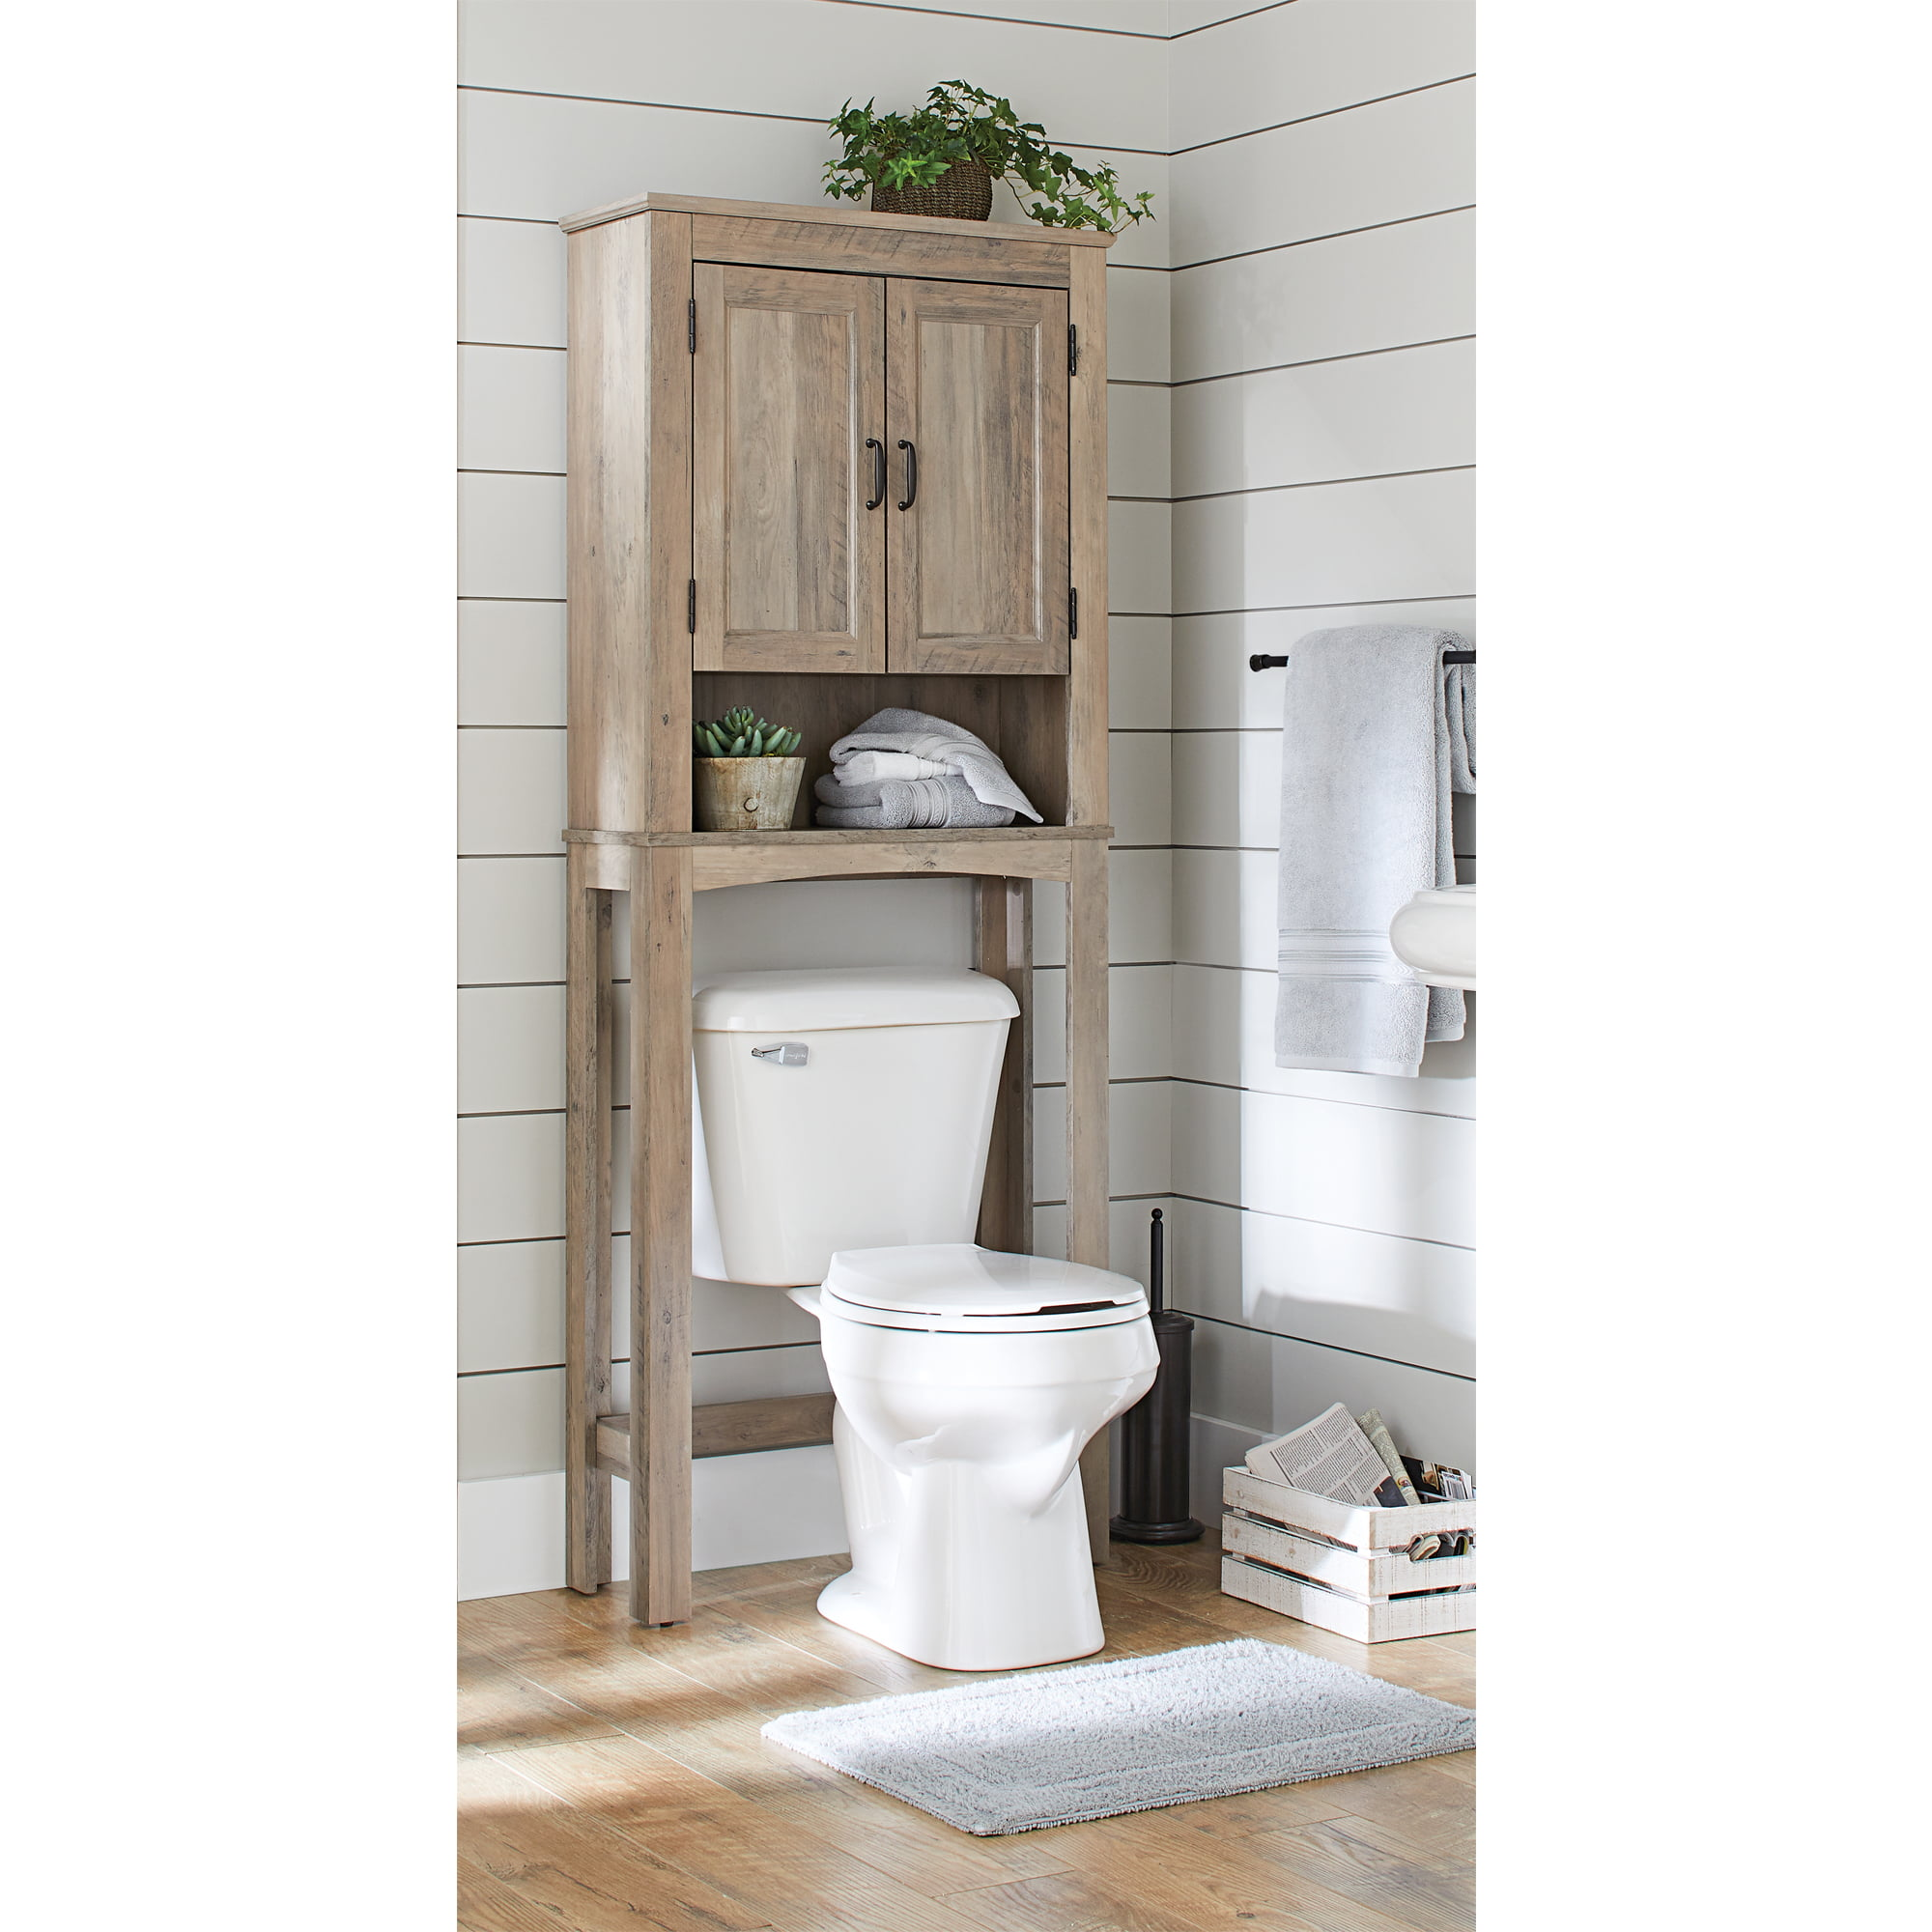 Better Homes Gardens Modern Farmhouse Over The Toilet Bathroom Space Saver With Three Fixed Shelves Rustic Gray Finish Walmart Com Walmart Com